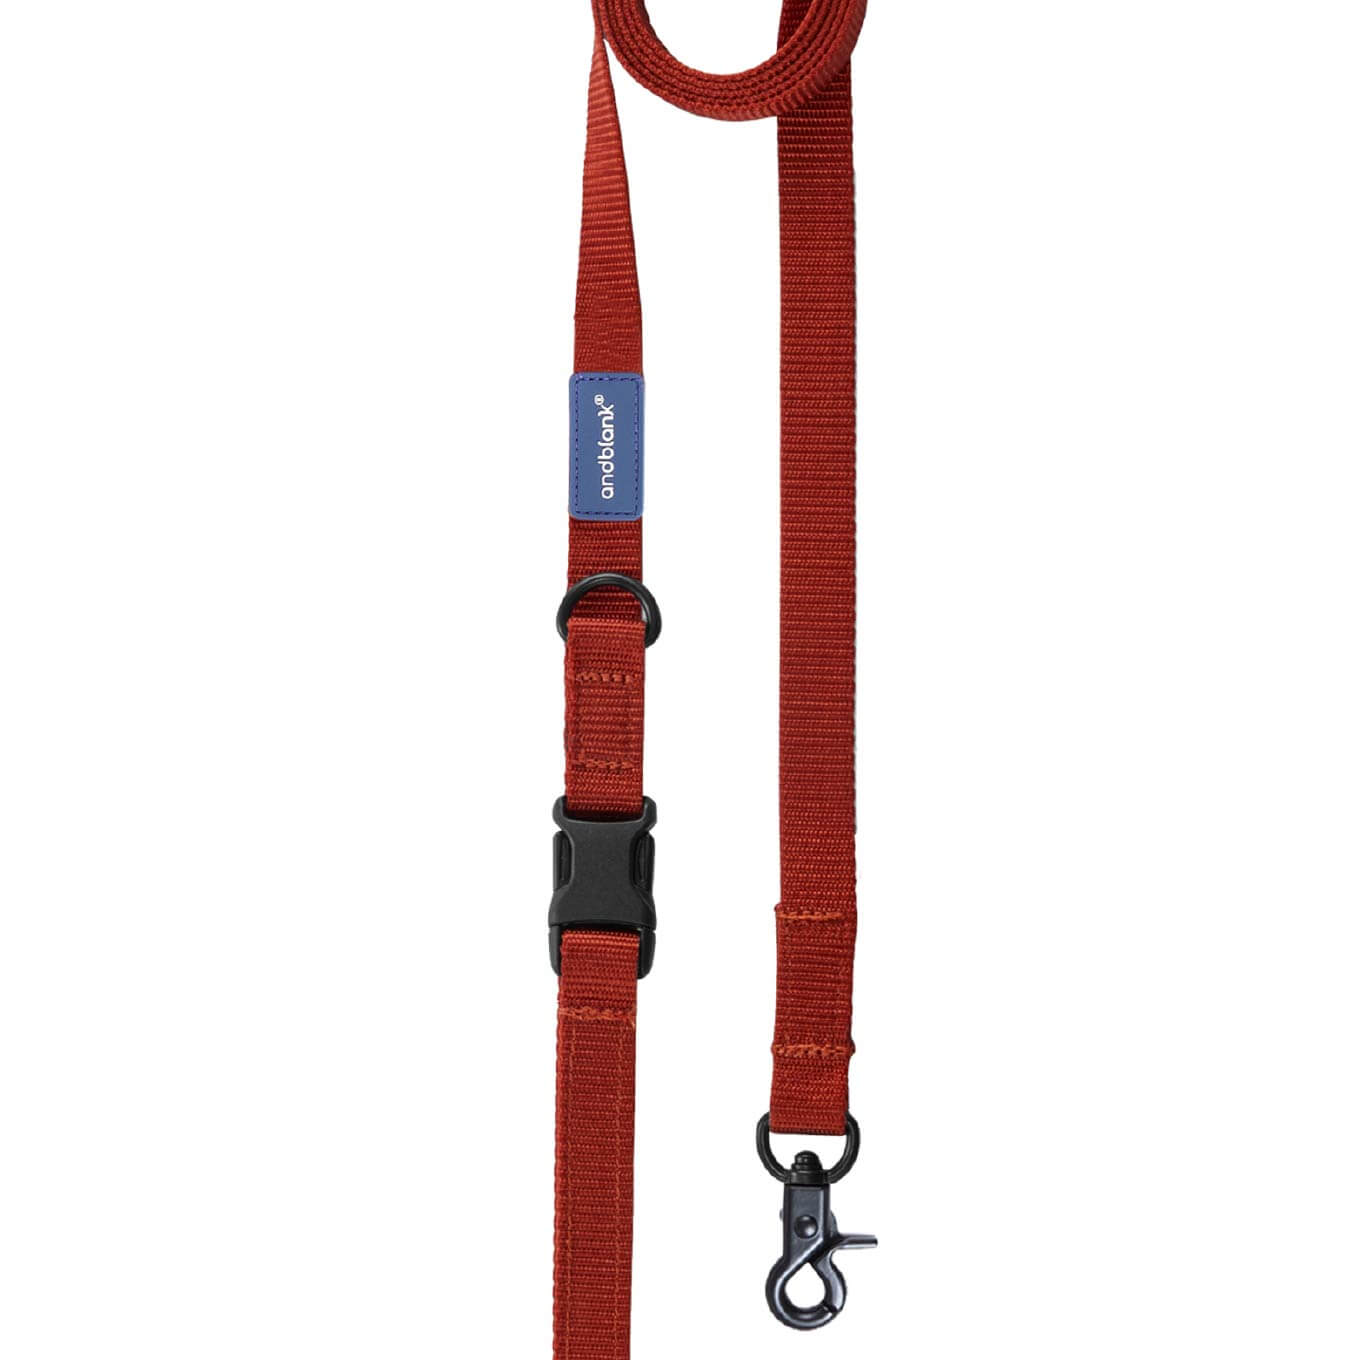 andblank® Leash | Brick - andblank, Cats, Dogs, Leashes, Walking - Vanillapup - Online Pet Shop